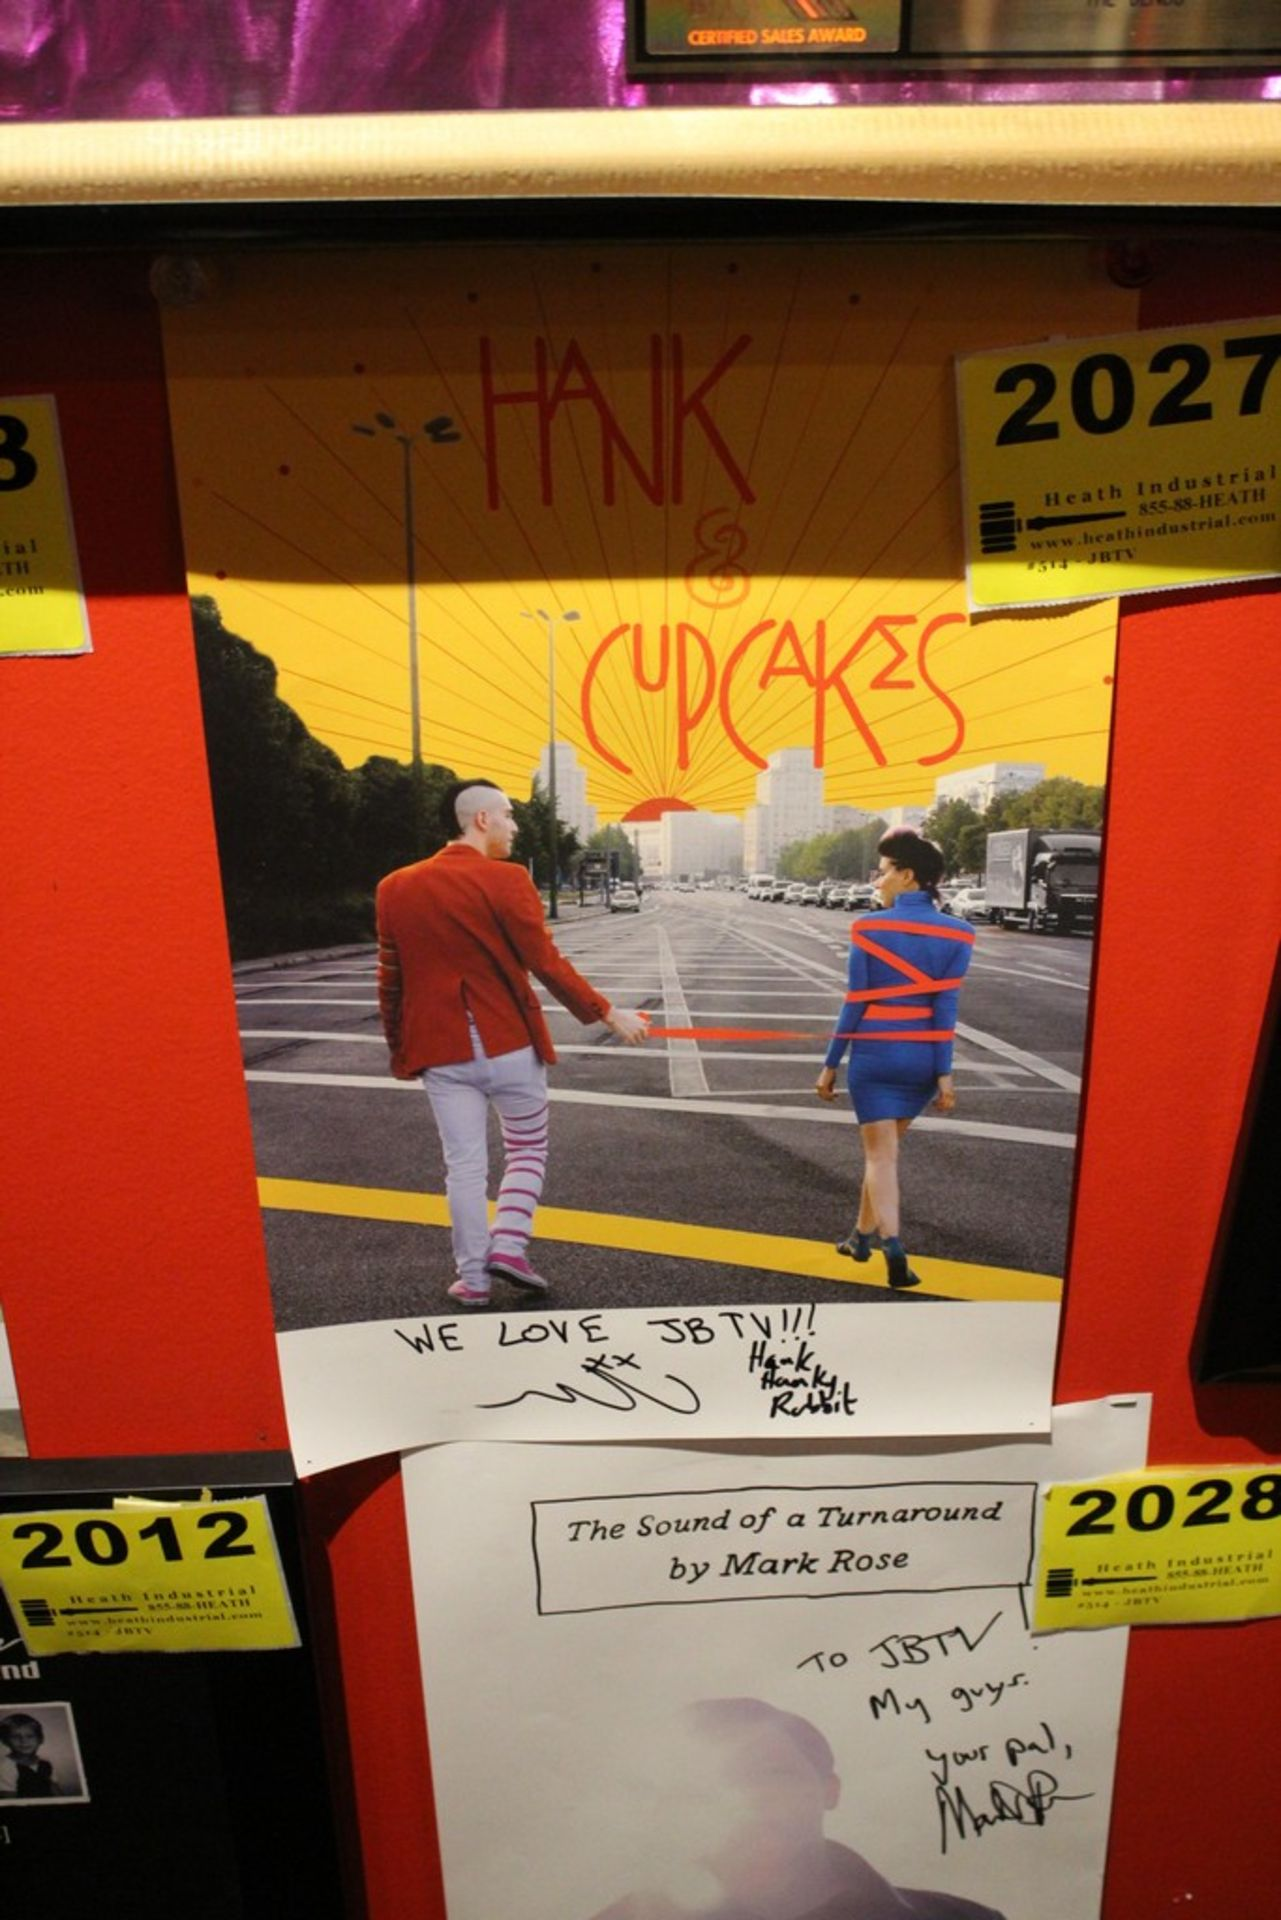 Lot 2027 - Hank and Cupcakes Signed Poster